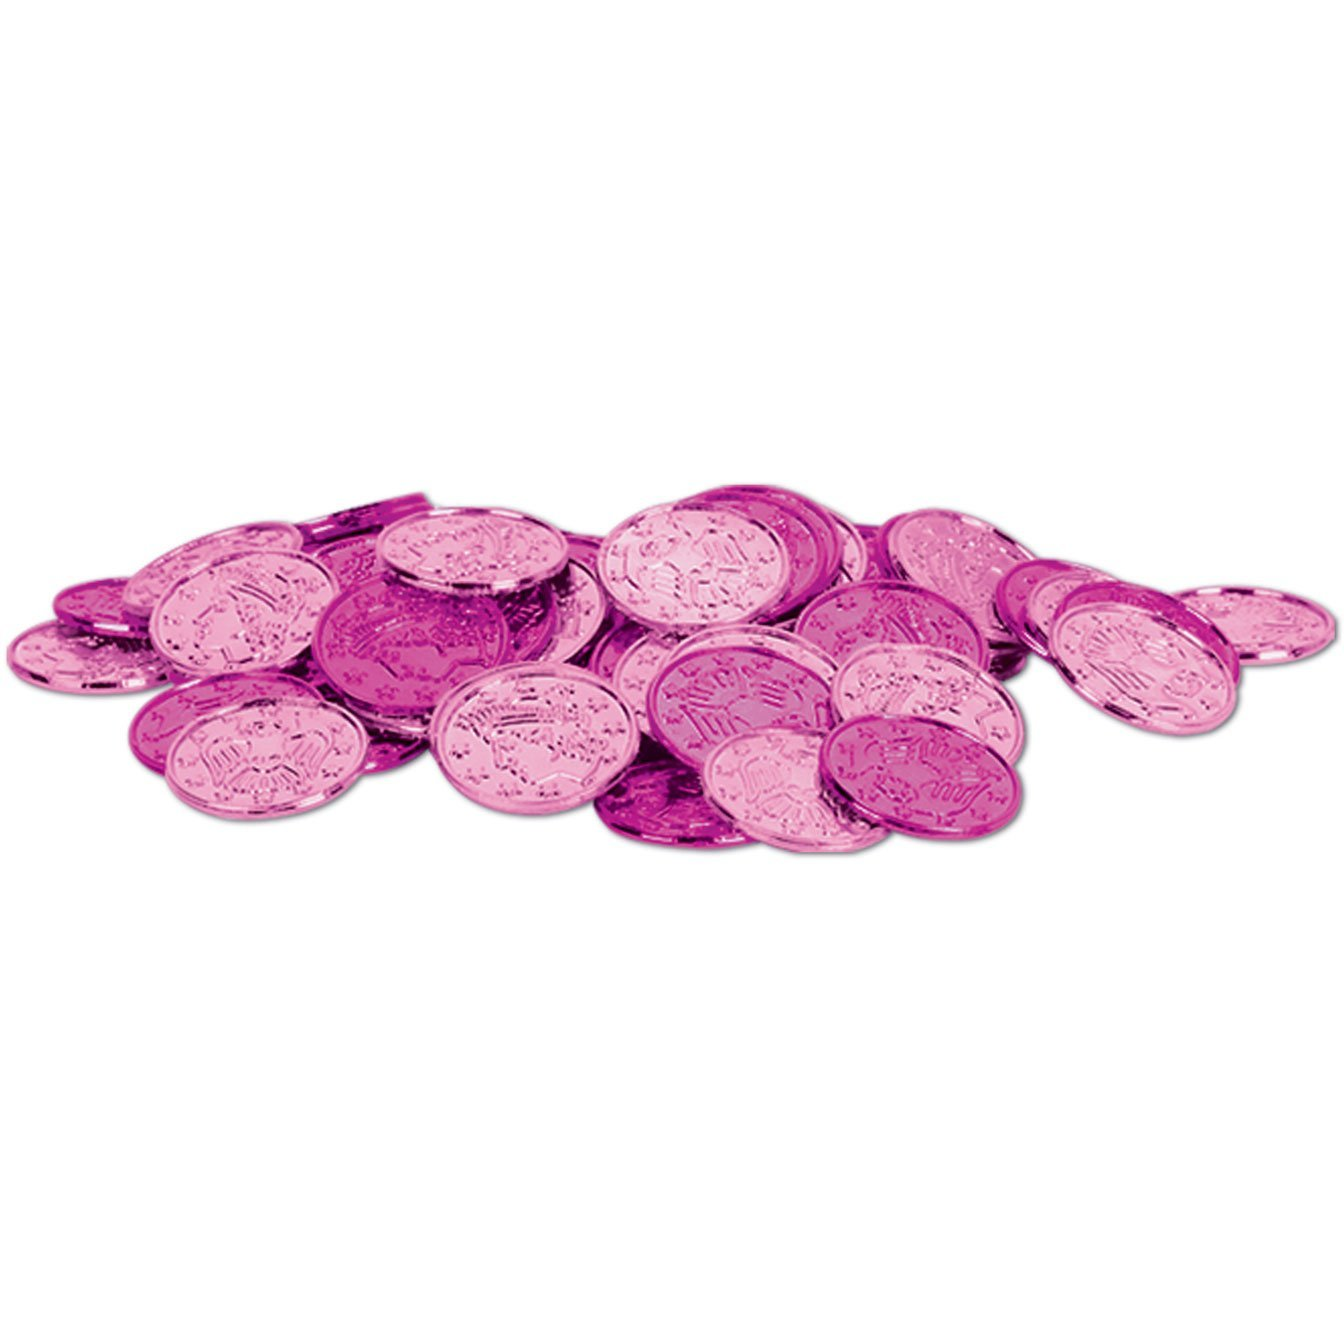 Plastic Coins (asstd cerise & pink) (100/Pkg), This item is a great value! By Beistle